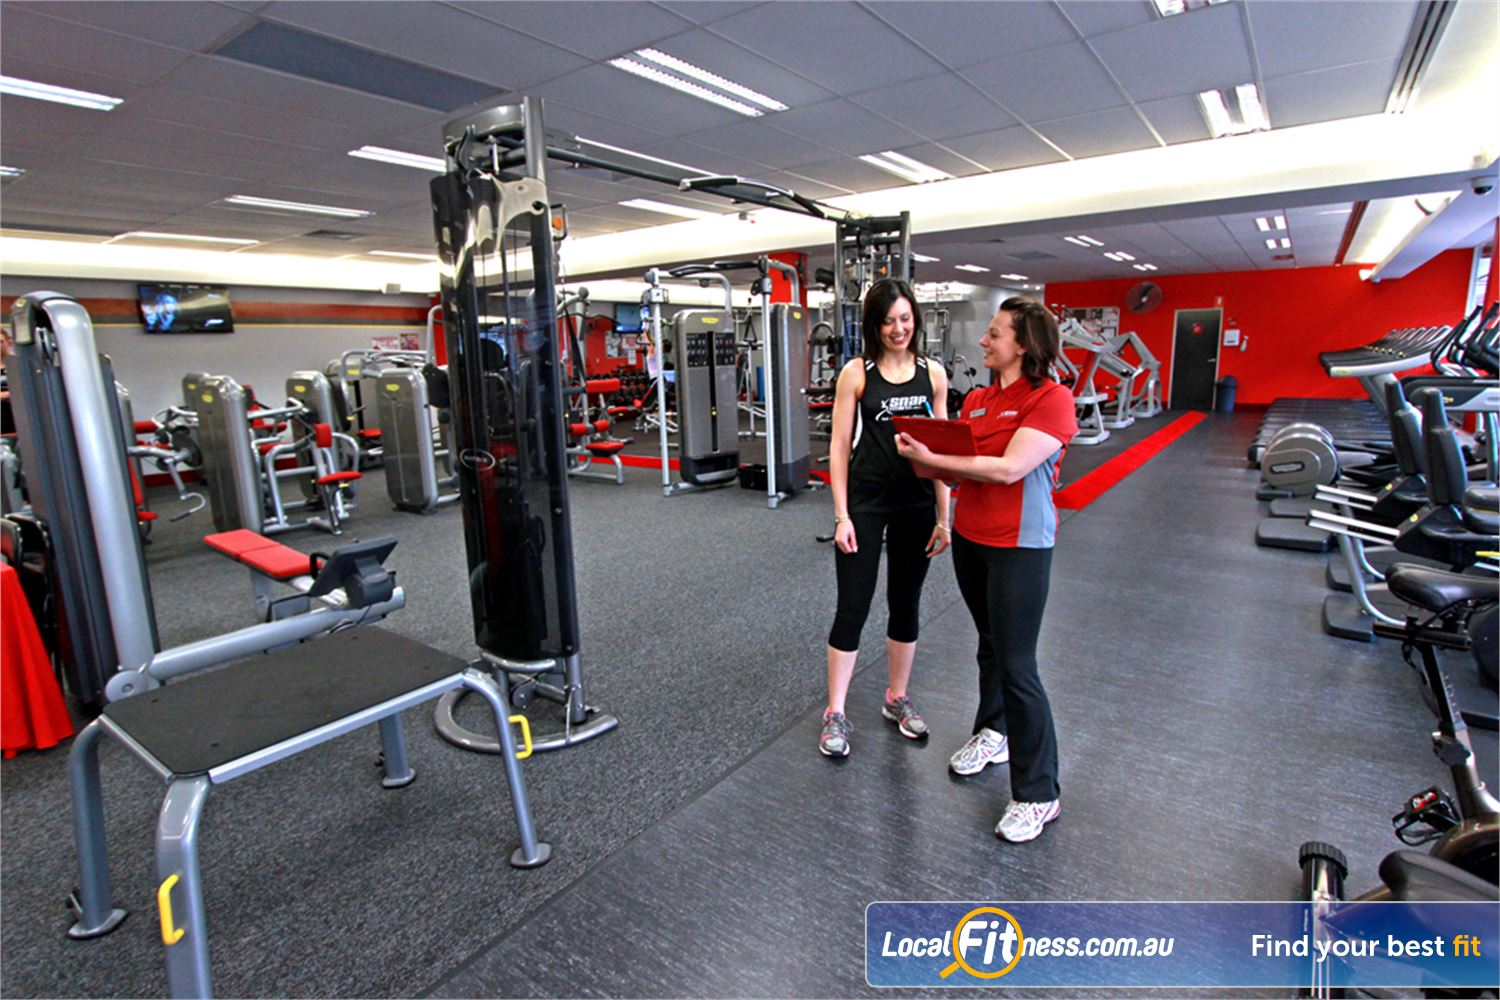 Snap Fitness Preston Welcome to Snap Fitness 24 hour gym Preston.